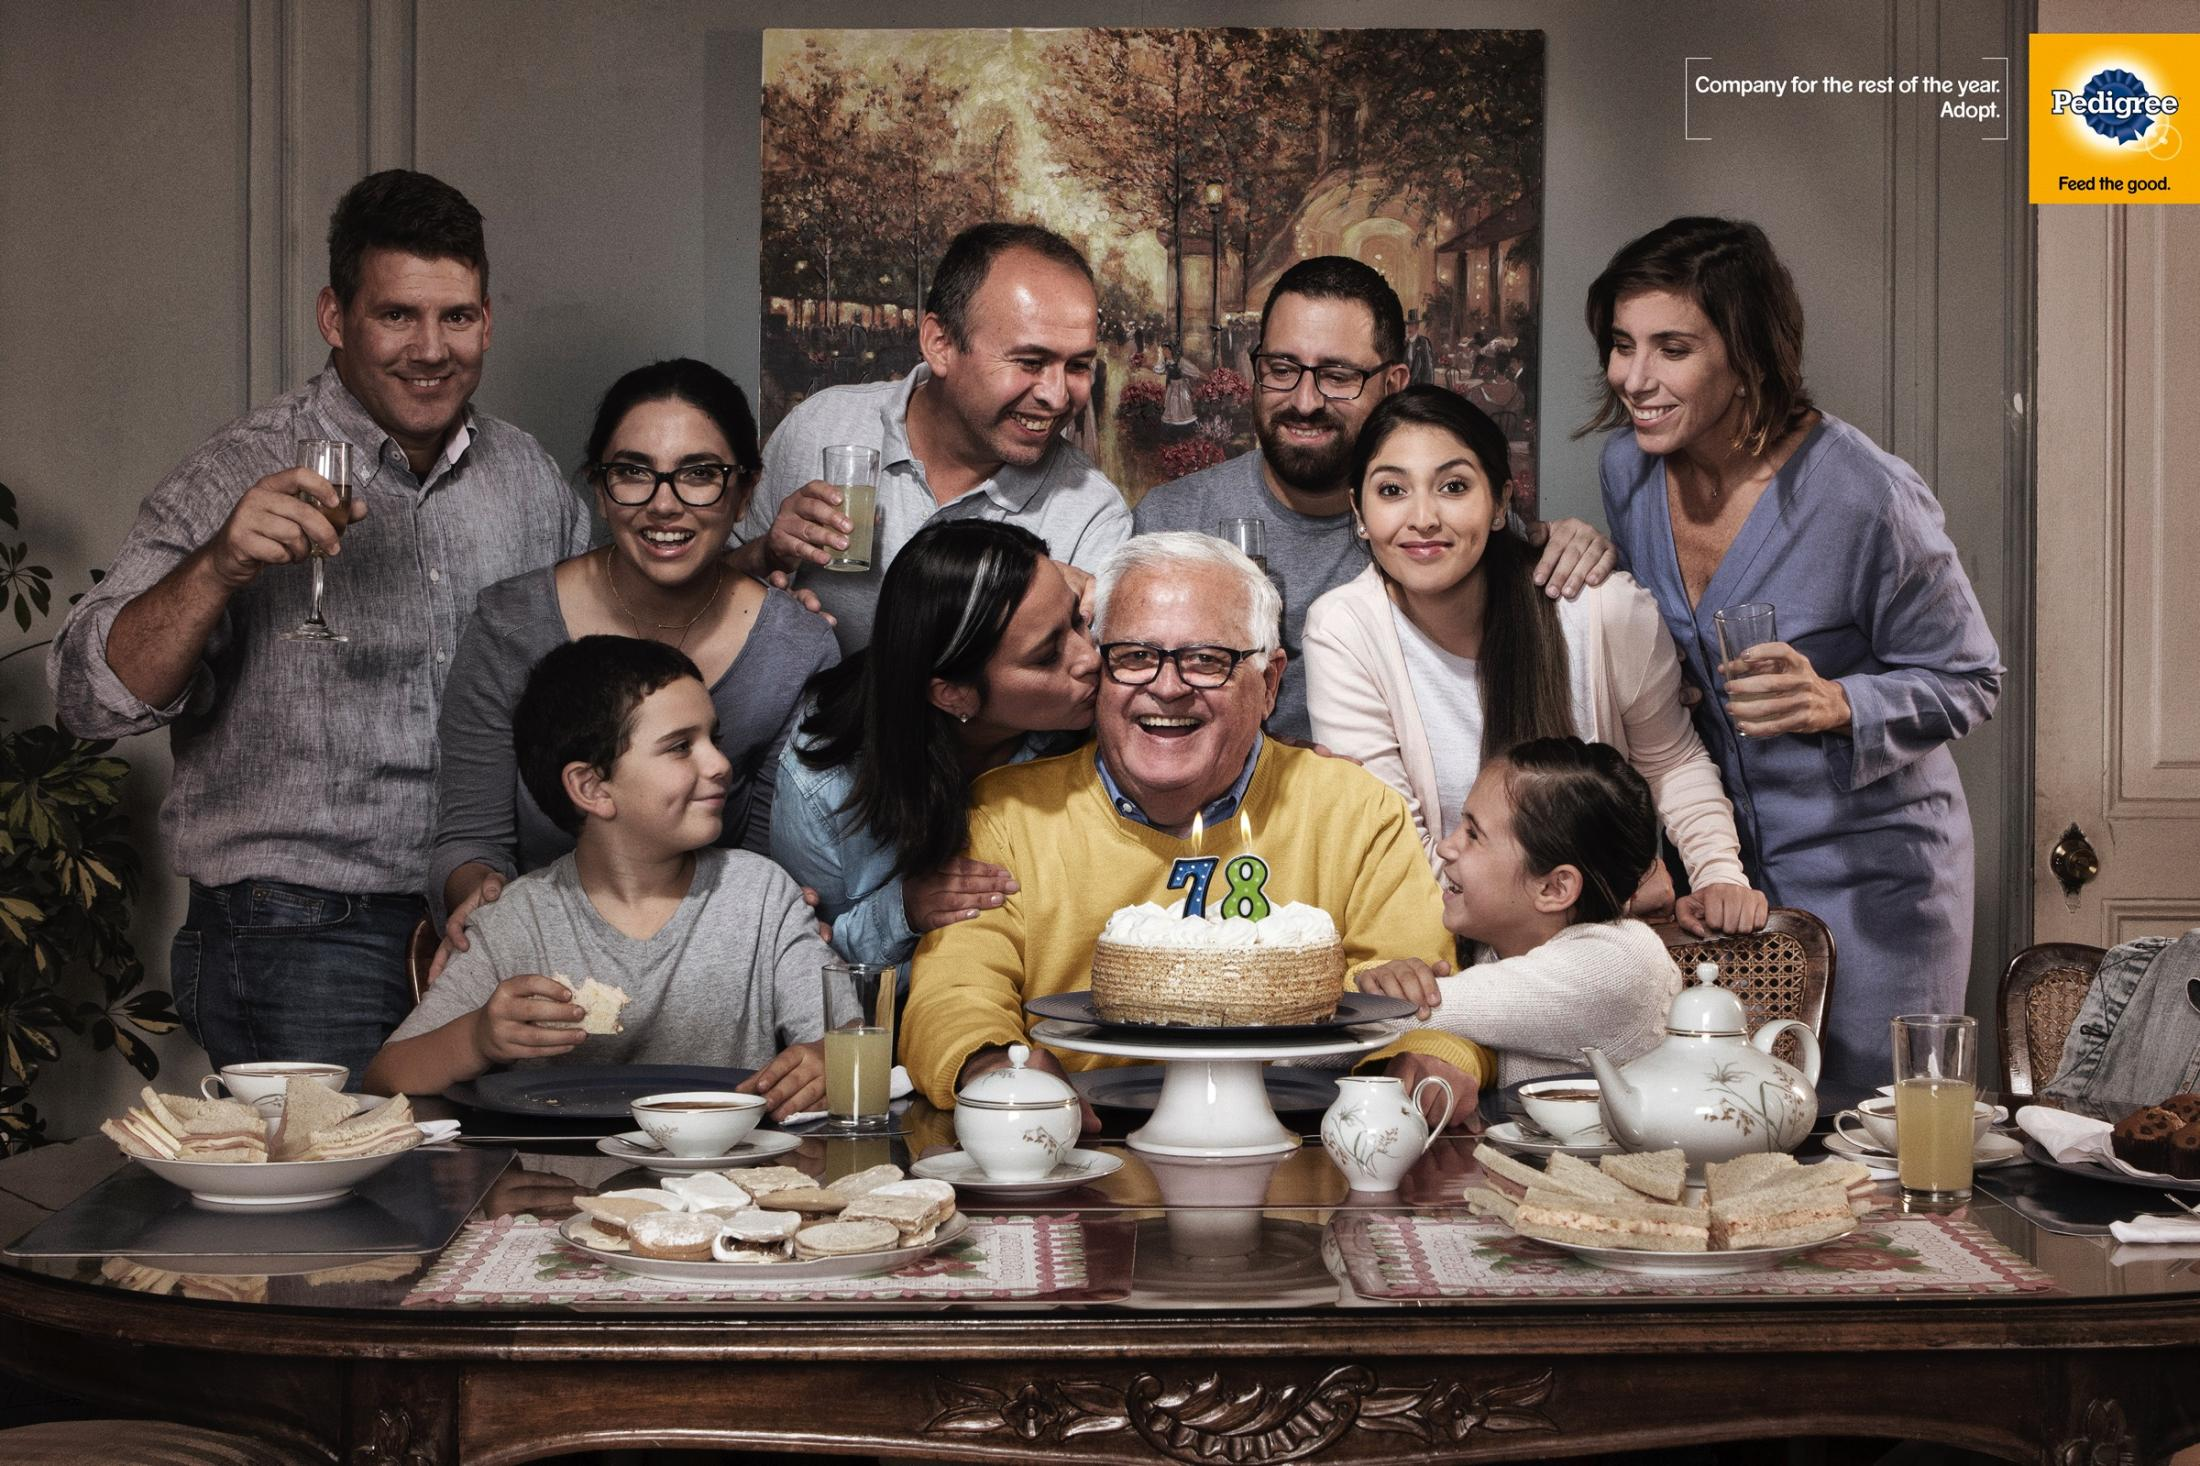 Pedigree Print Ad - Birthday